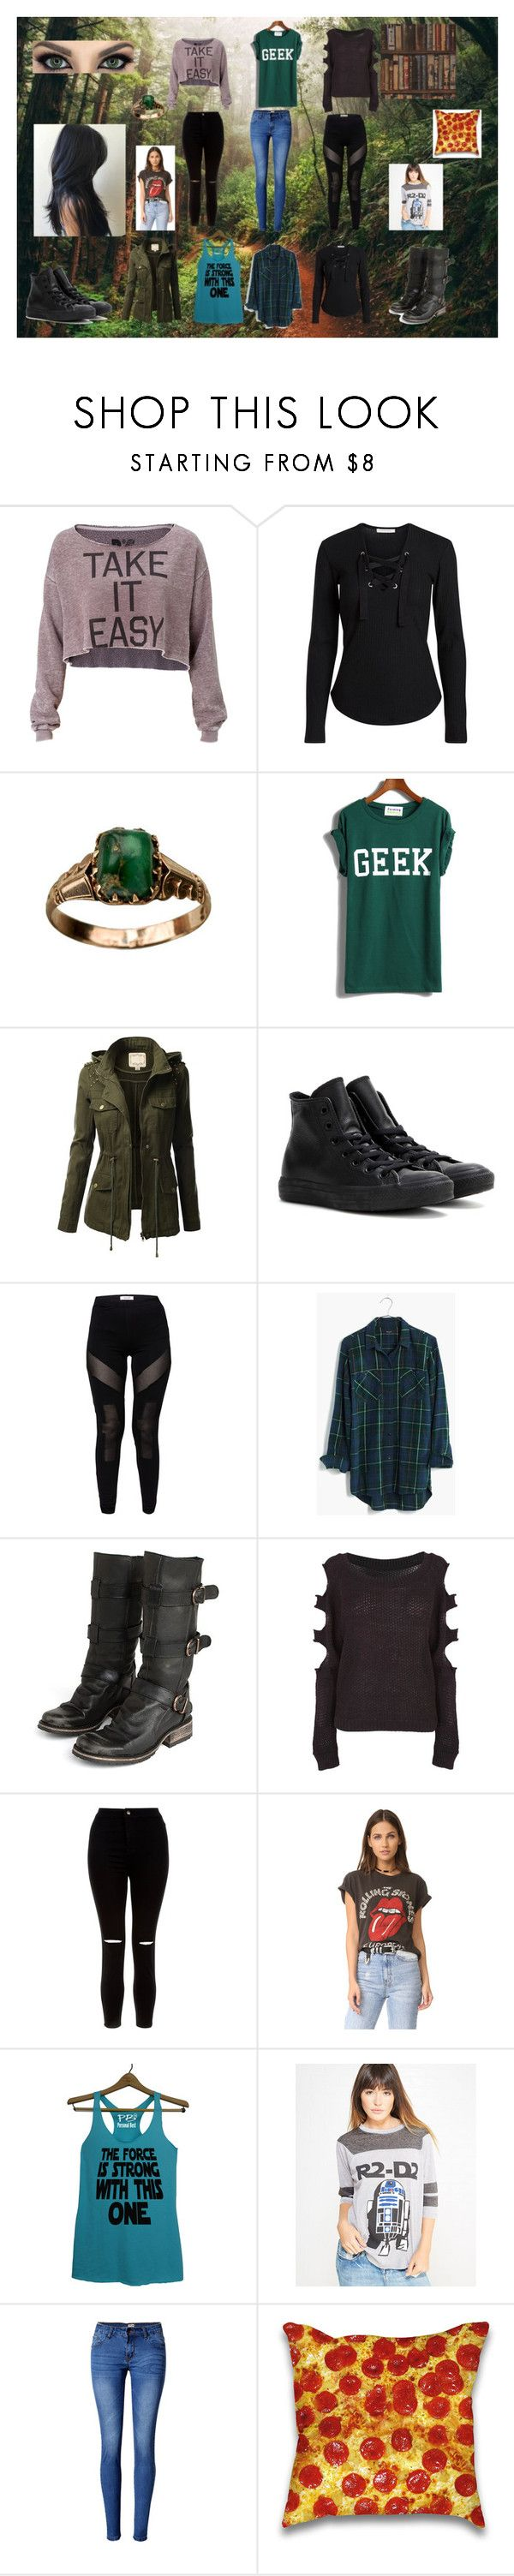 """""""'Vannah 2"""" by shaina-elise-hamby ❤ liked on Polyvore featuring GURU, Rebel Yell, J.TOMSON, Converse, Madewell, Steve Madden, New Look, MadeWorn, Freeze and WithChic"""